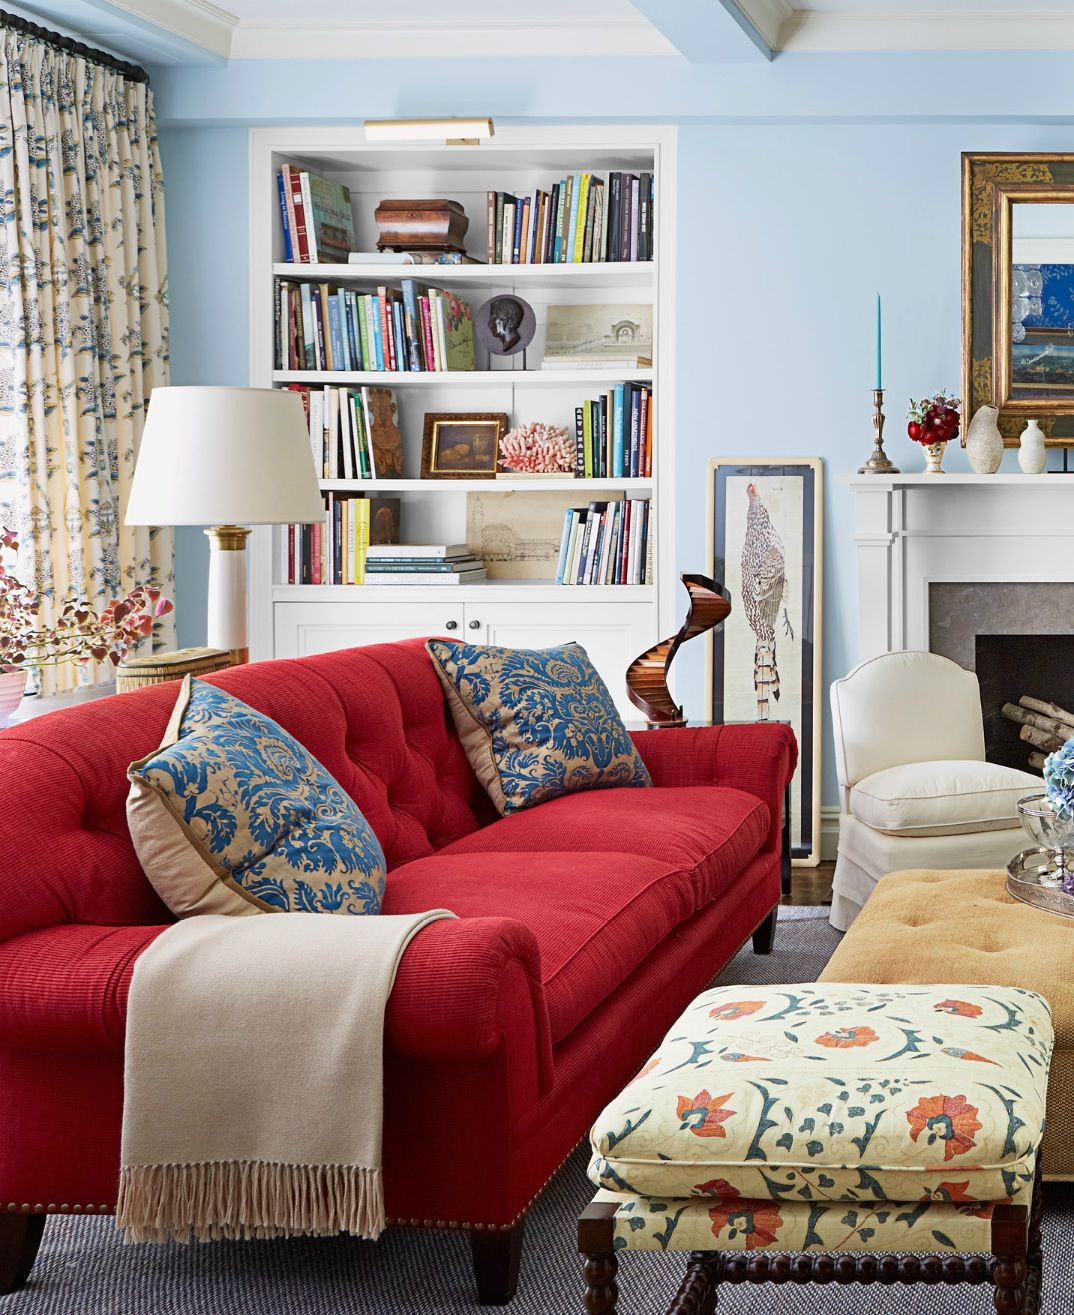 Pin By Andee Krasner On Home House Meee Red Couch Living Room Red Sofa Living Room Red Sofa Living